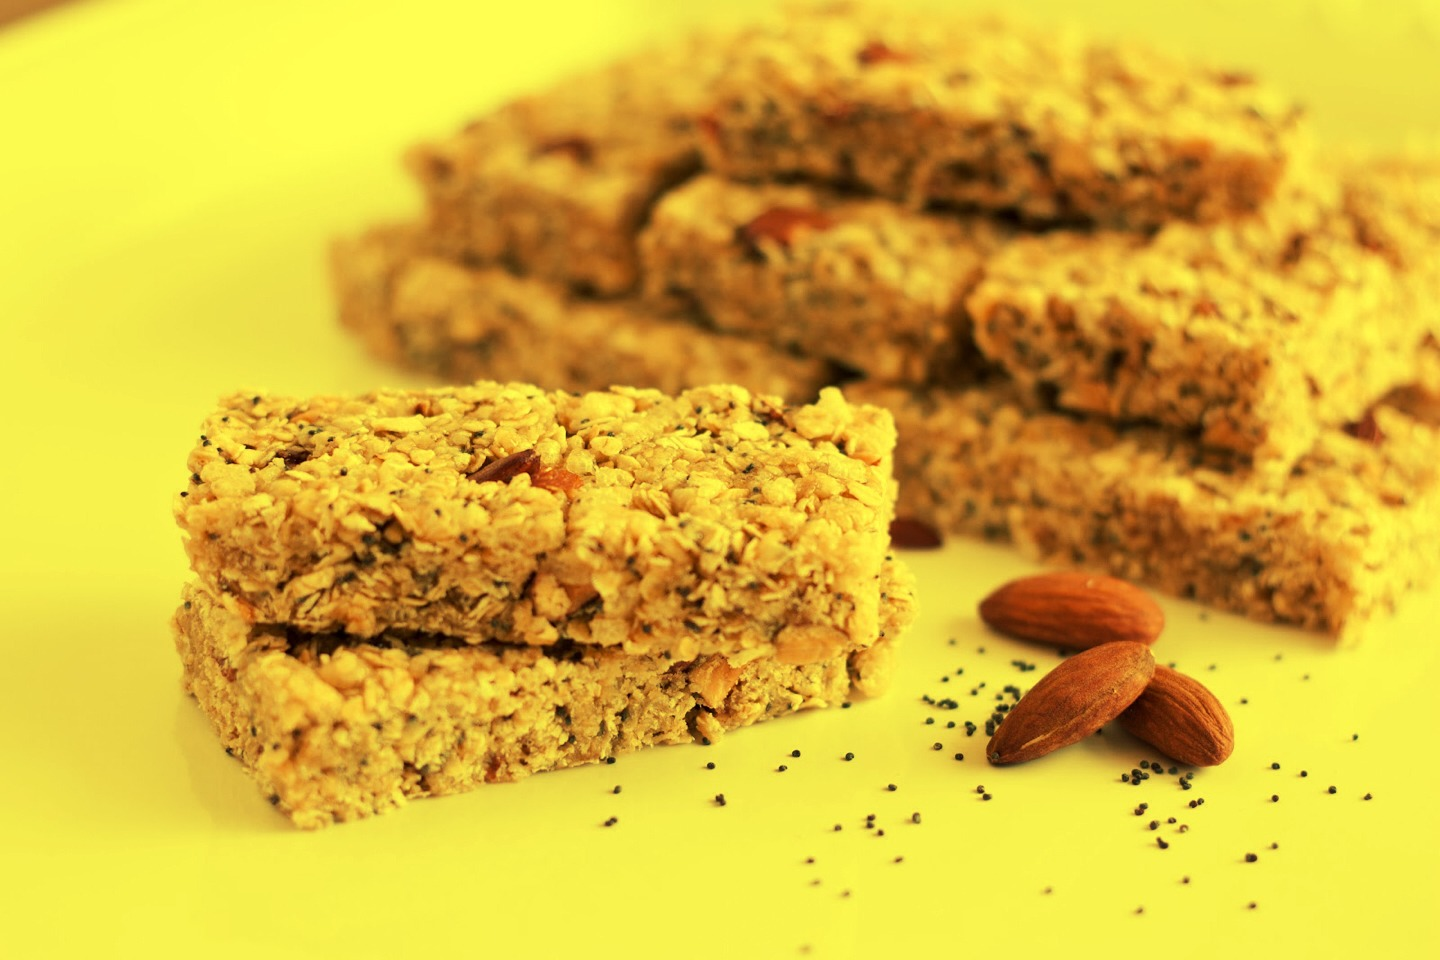 As much as they tell you how healthy they are. Granola bars/ cereals ARE unhealthy.